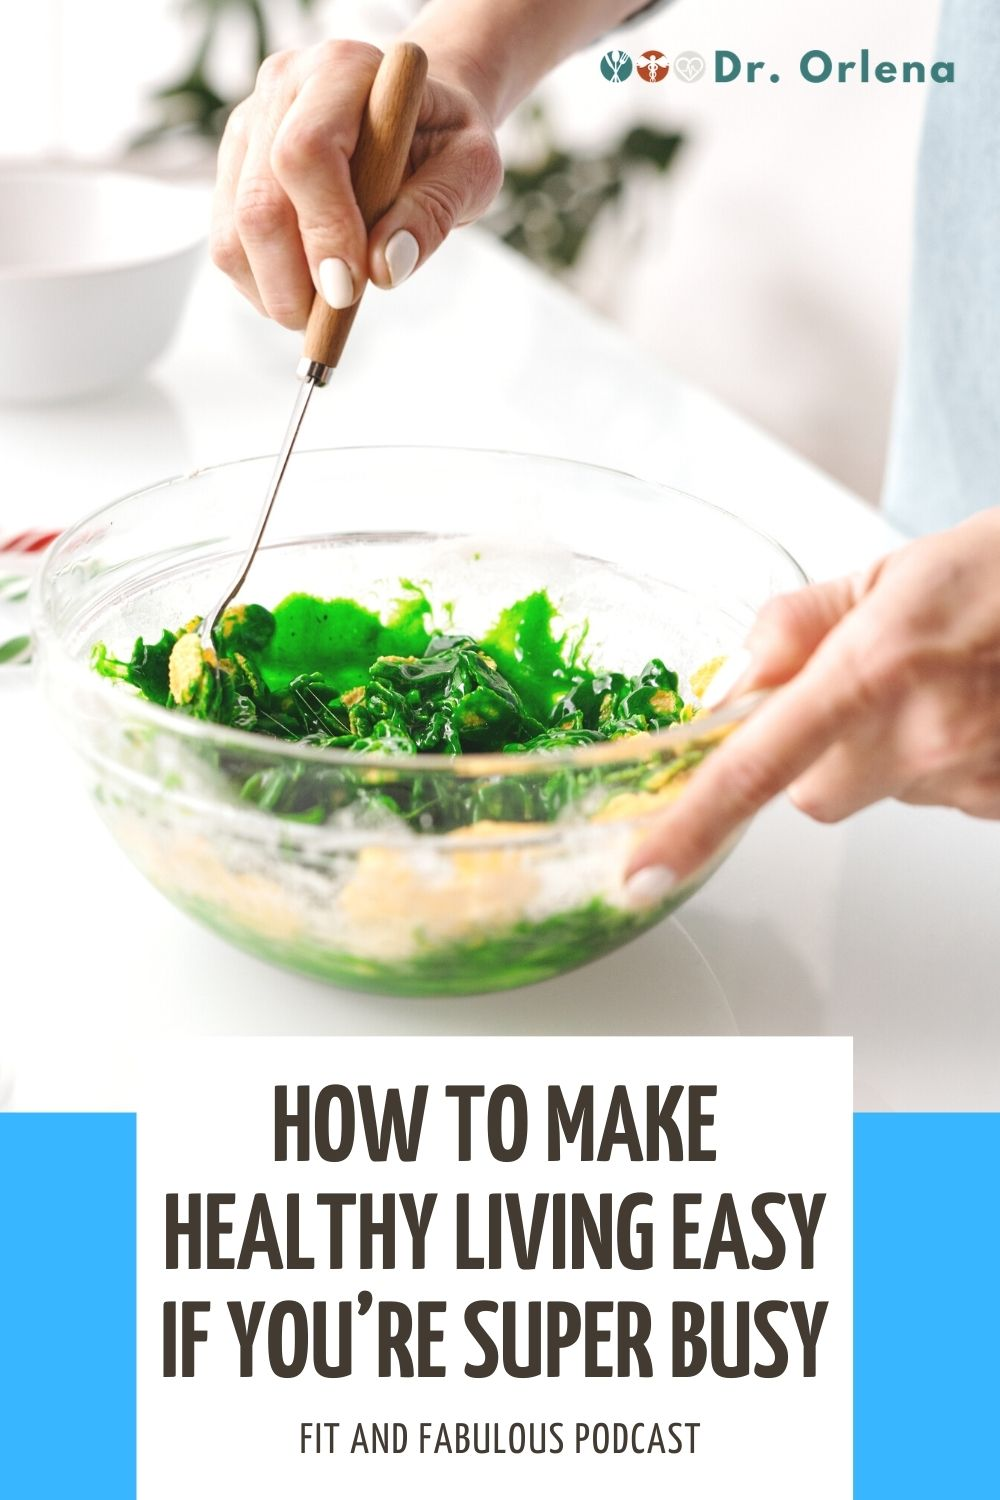 A woman preparing a bowl of salad #healthy #healthylife #healthylifestyle #wellness #weightloss #easyweightloss